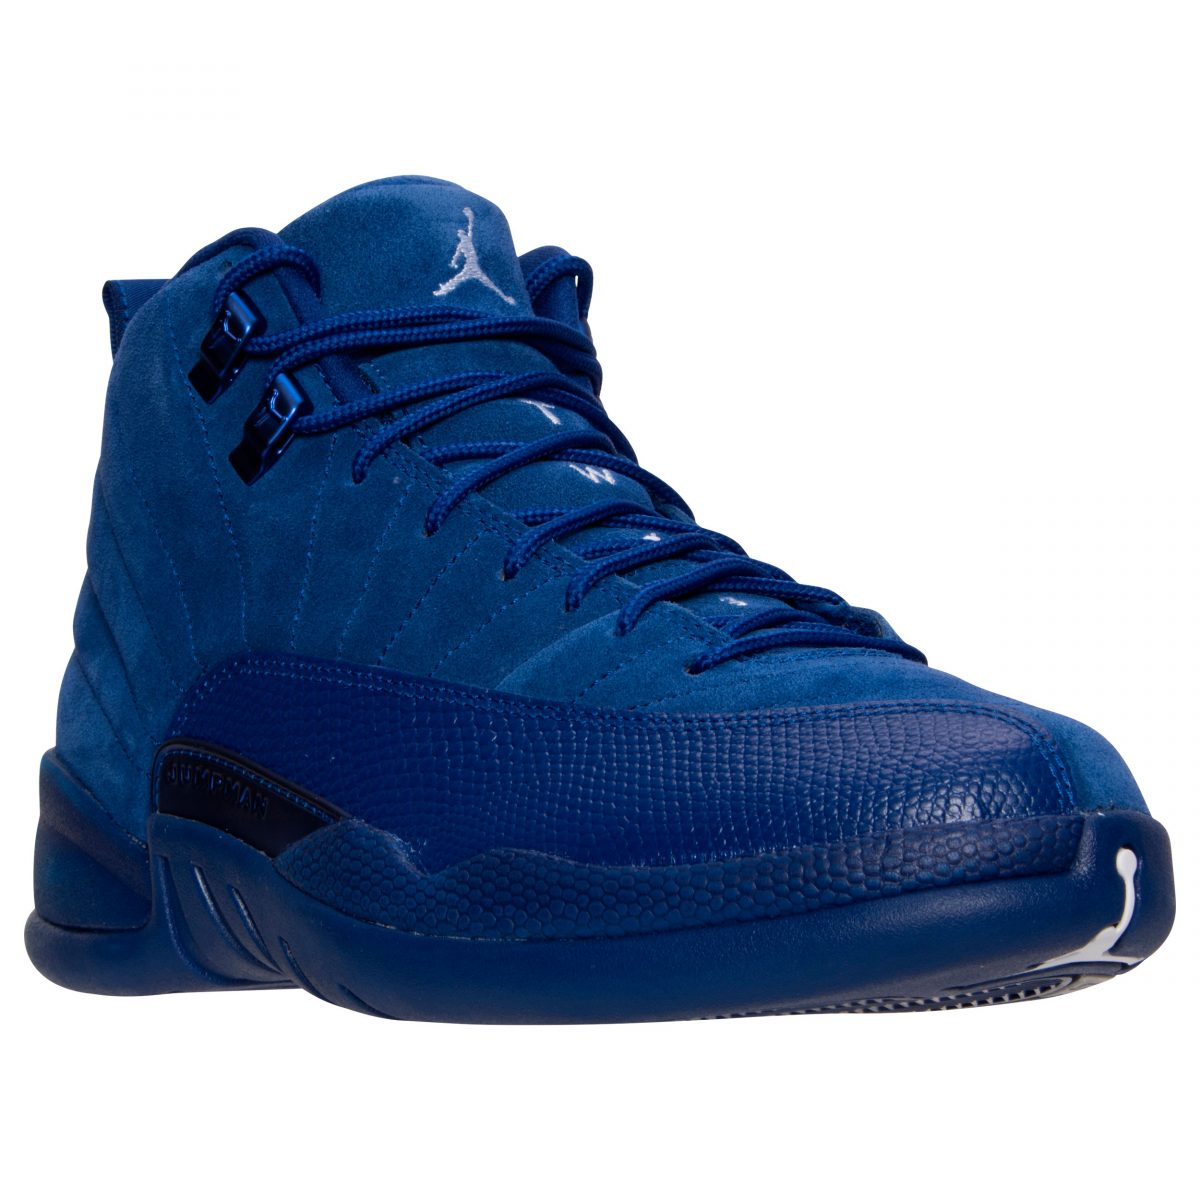 pretty nice 61a14 ac468 The Upcoming Air Jordan 12 Retro PRM 'Deep Royal' - WearTesters